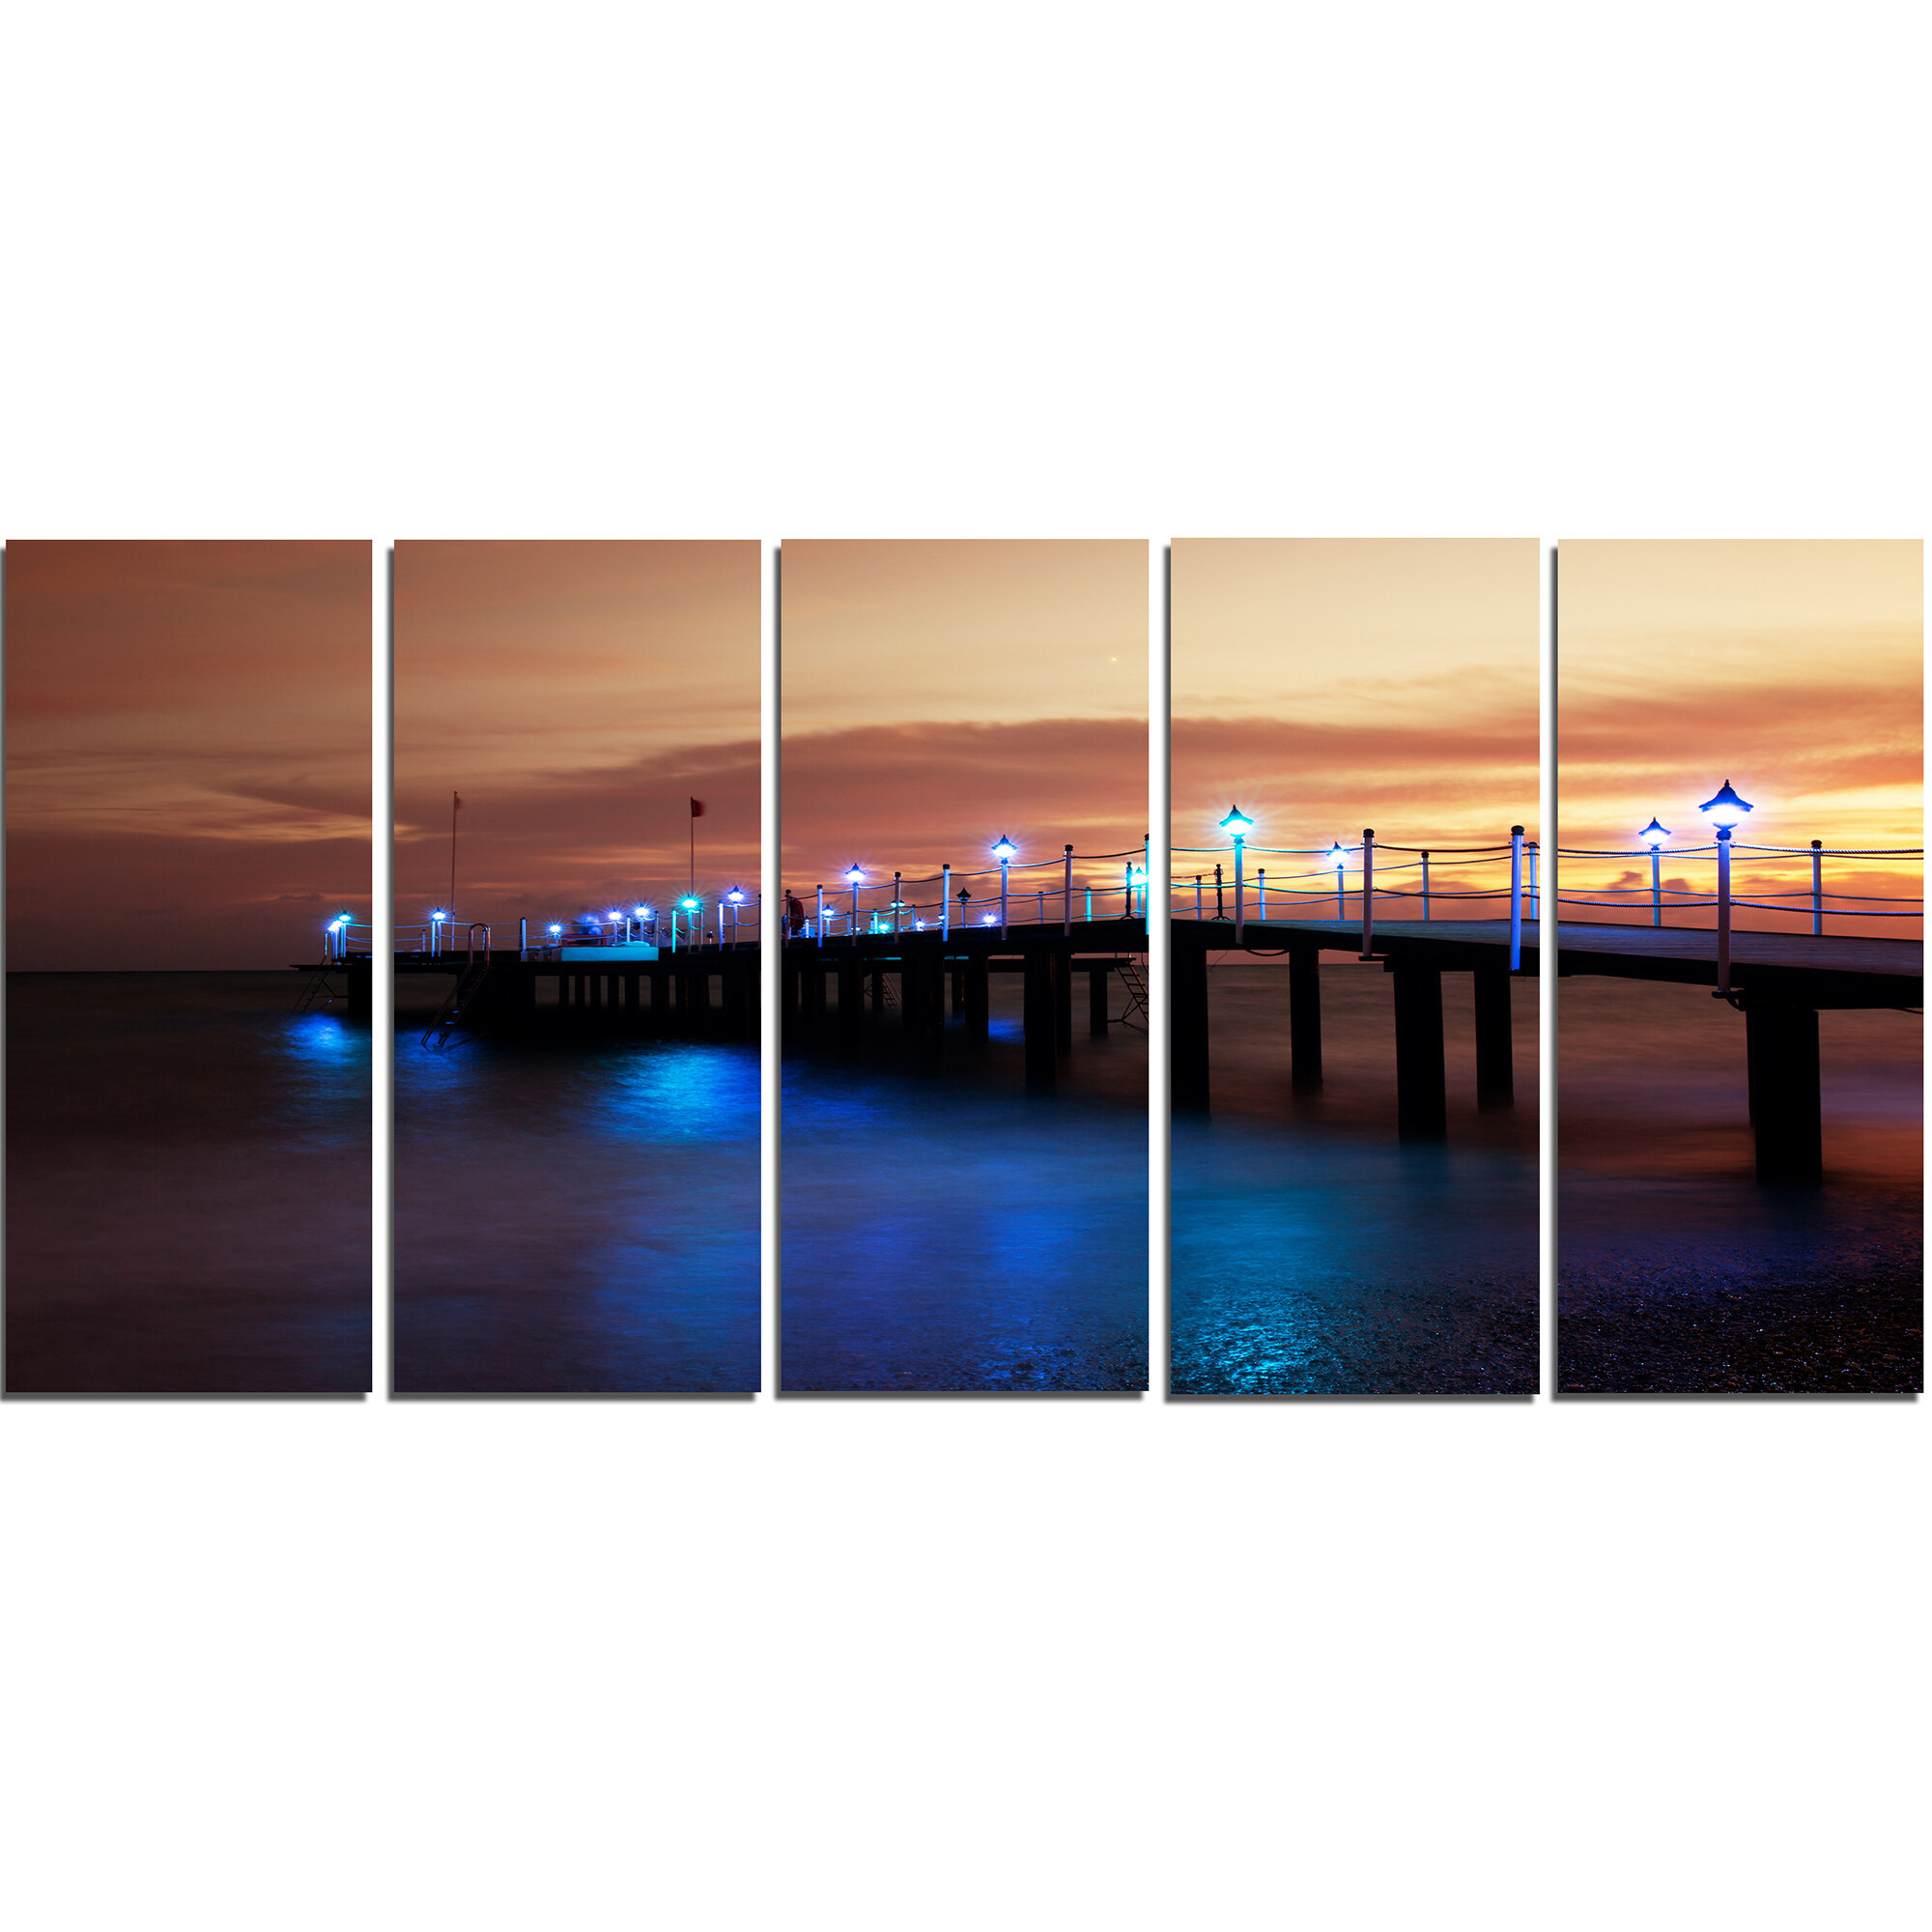 Designart Blue Waters And Bridge At Sunset 5 Piece Wall Art On Wrapped Canvas Set Wayfair